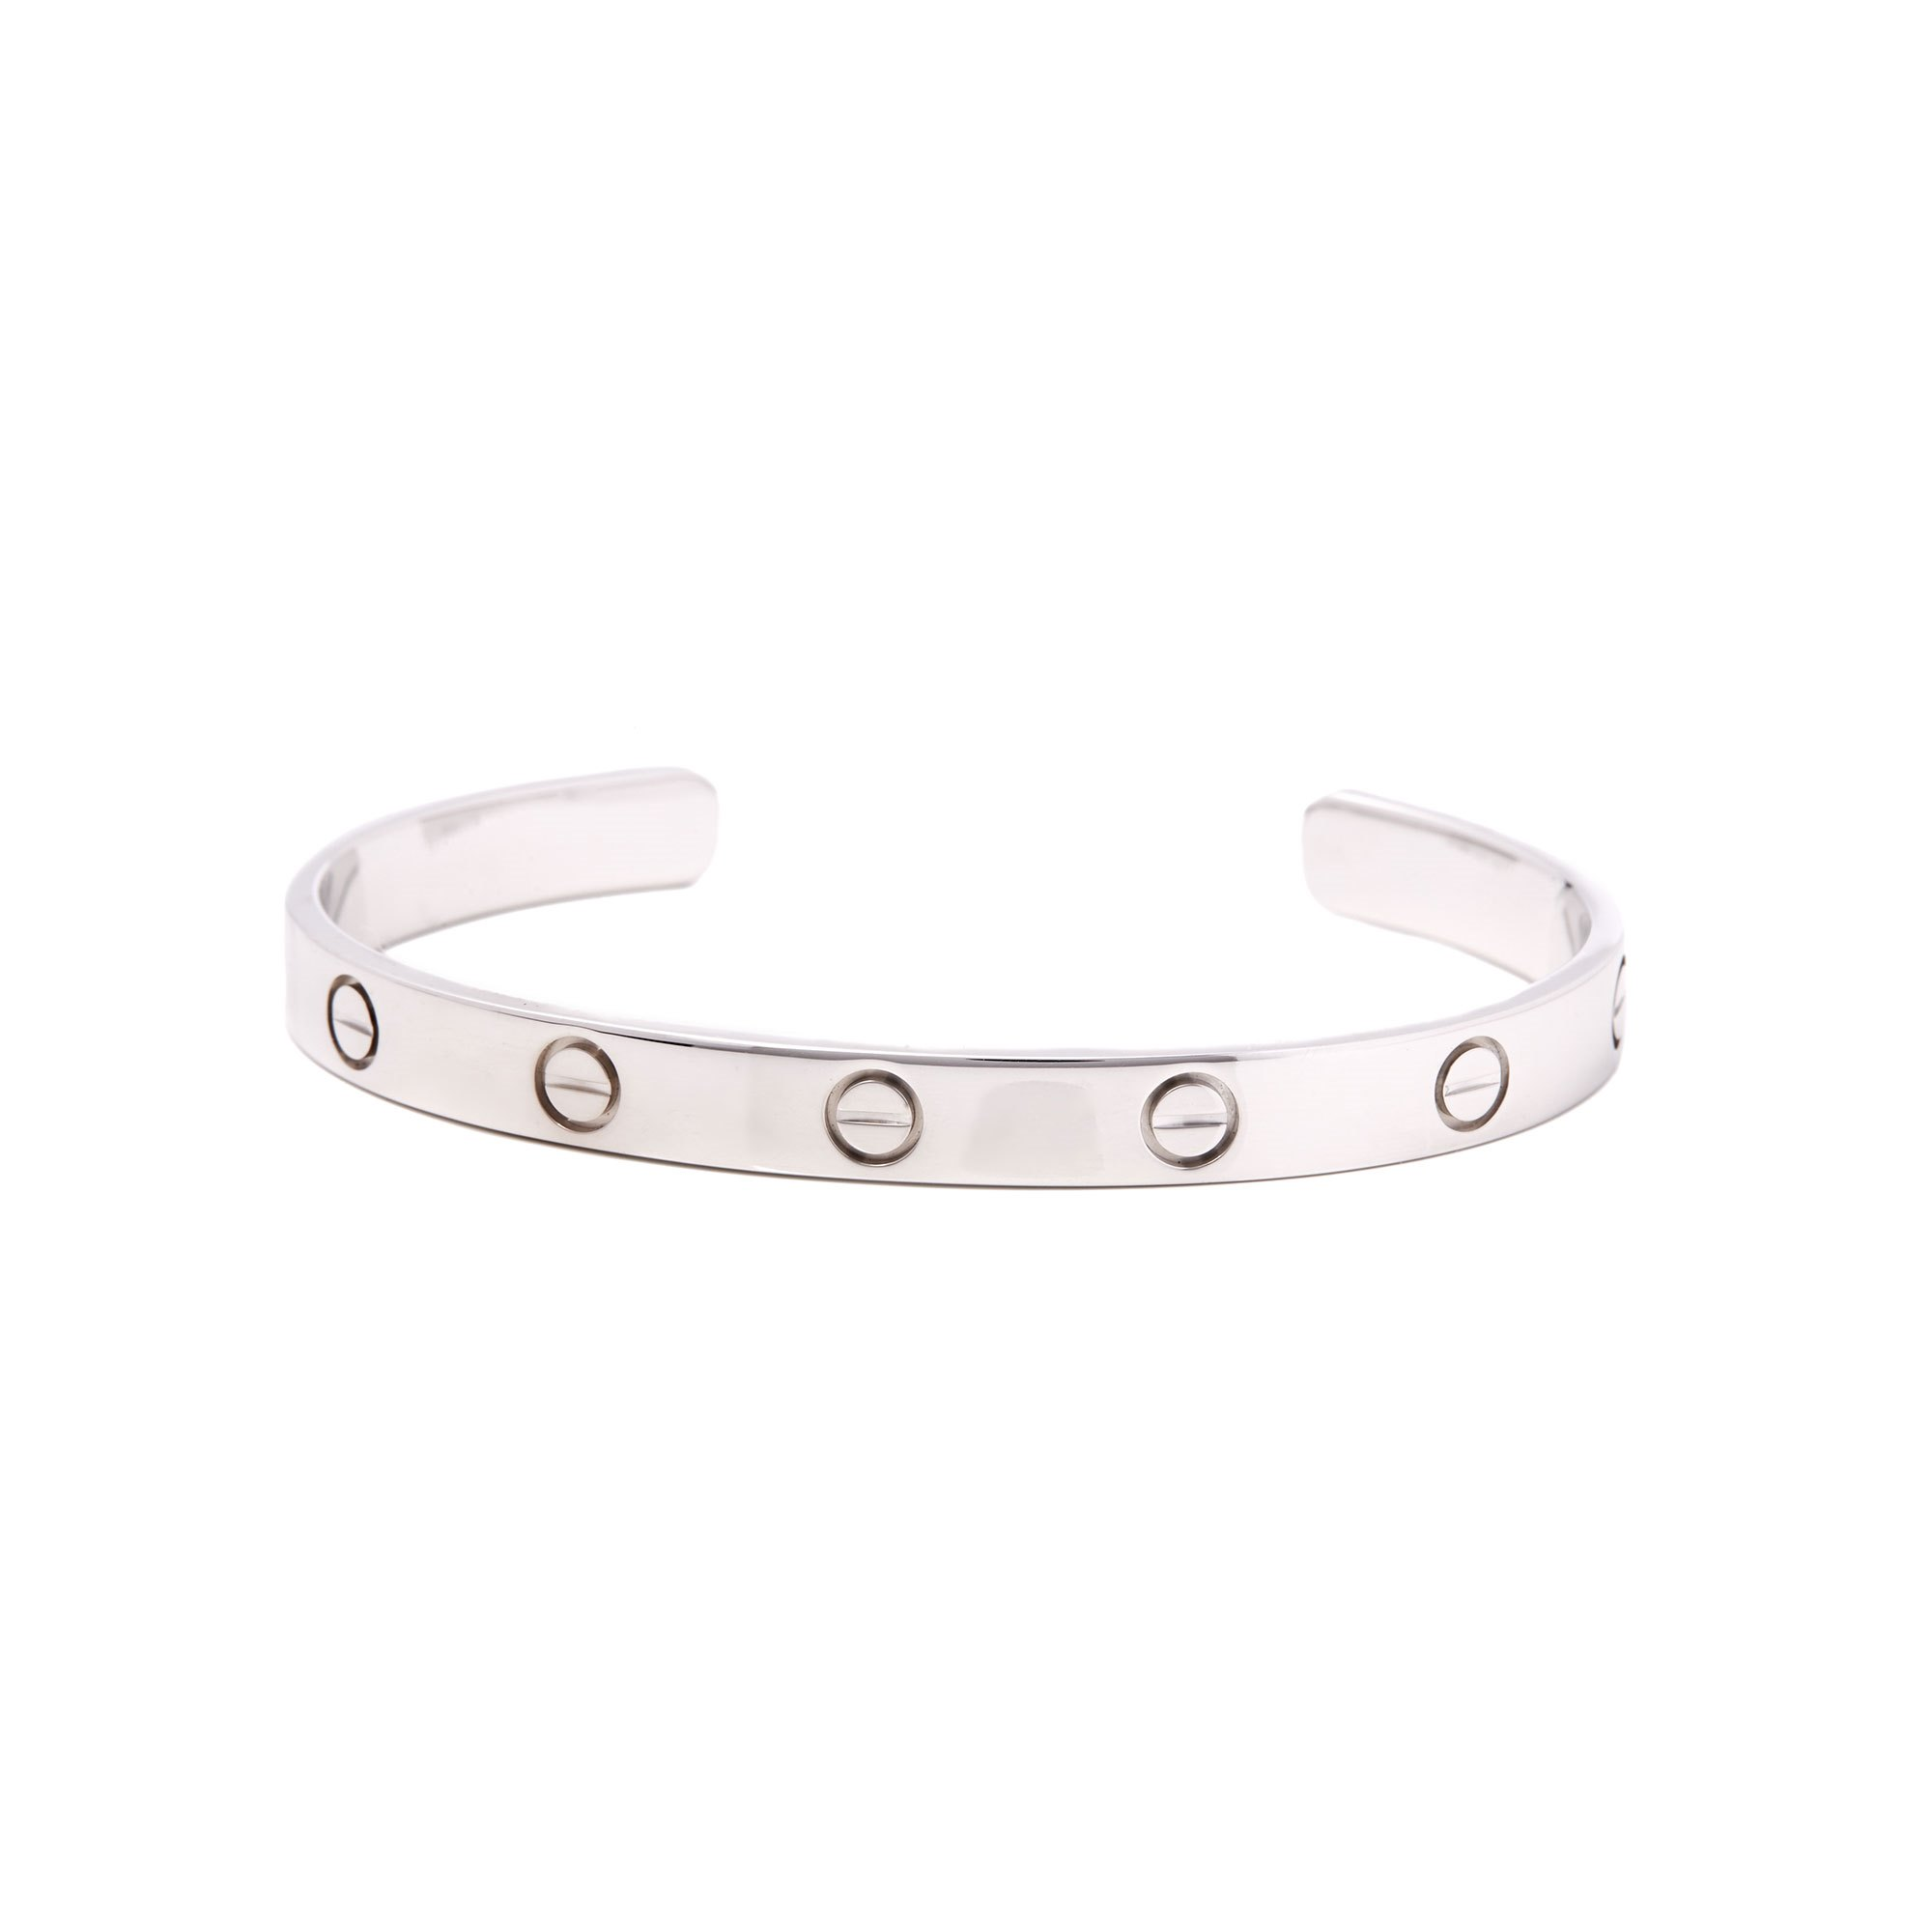 Cartier Love 18ct White Gold Cuff Bangle